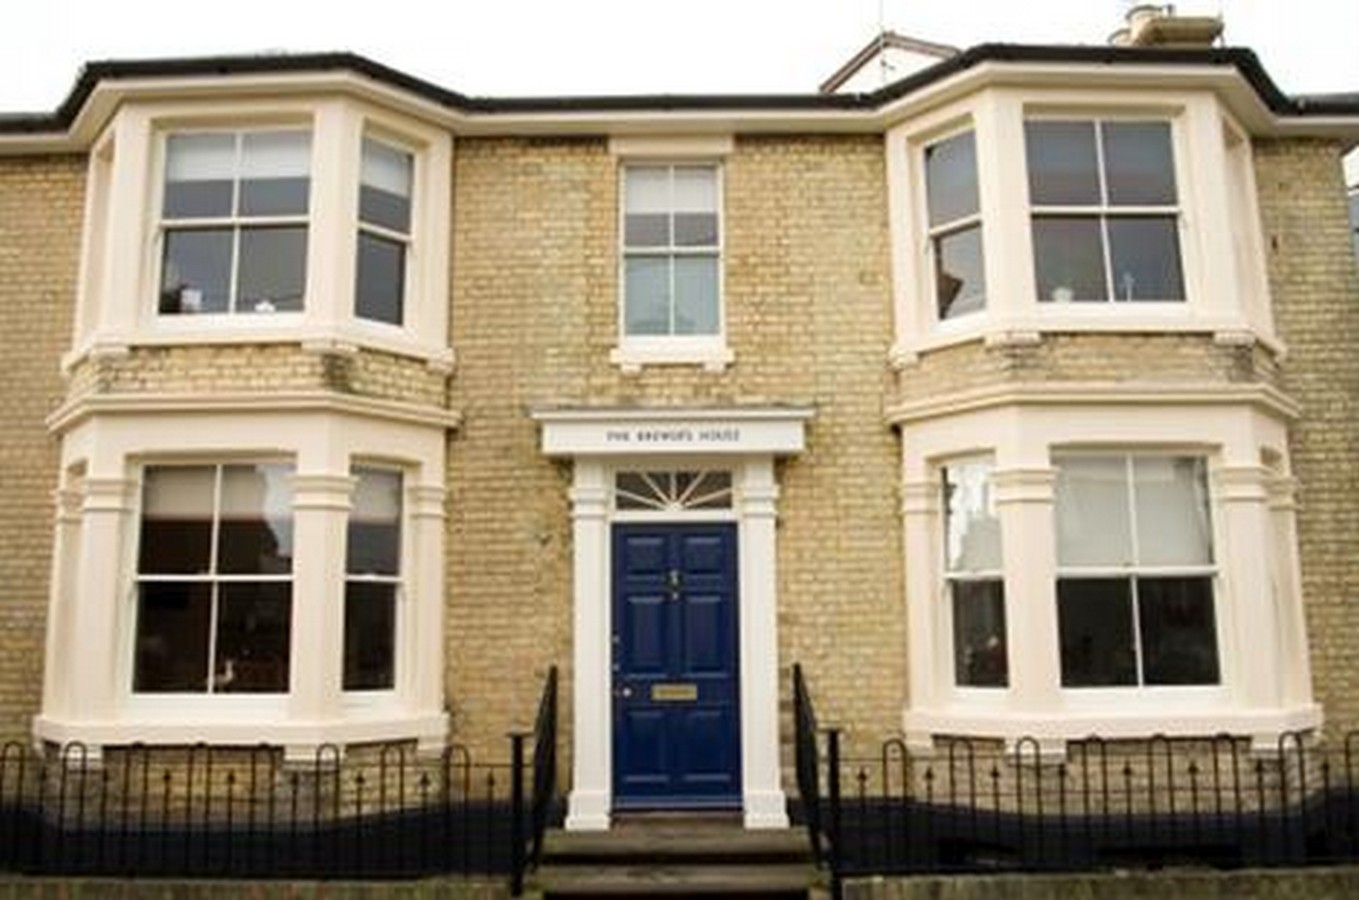 Brewers House, Southwold    - A week long stay* for 8 guests at the Brewers House, Southwold.